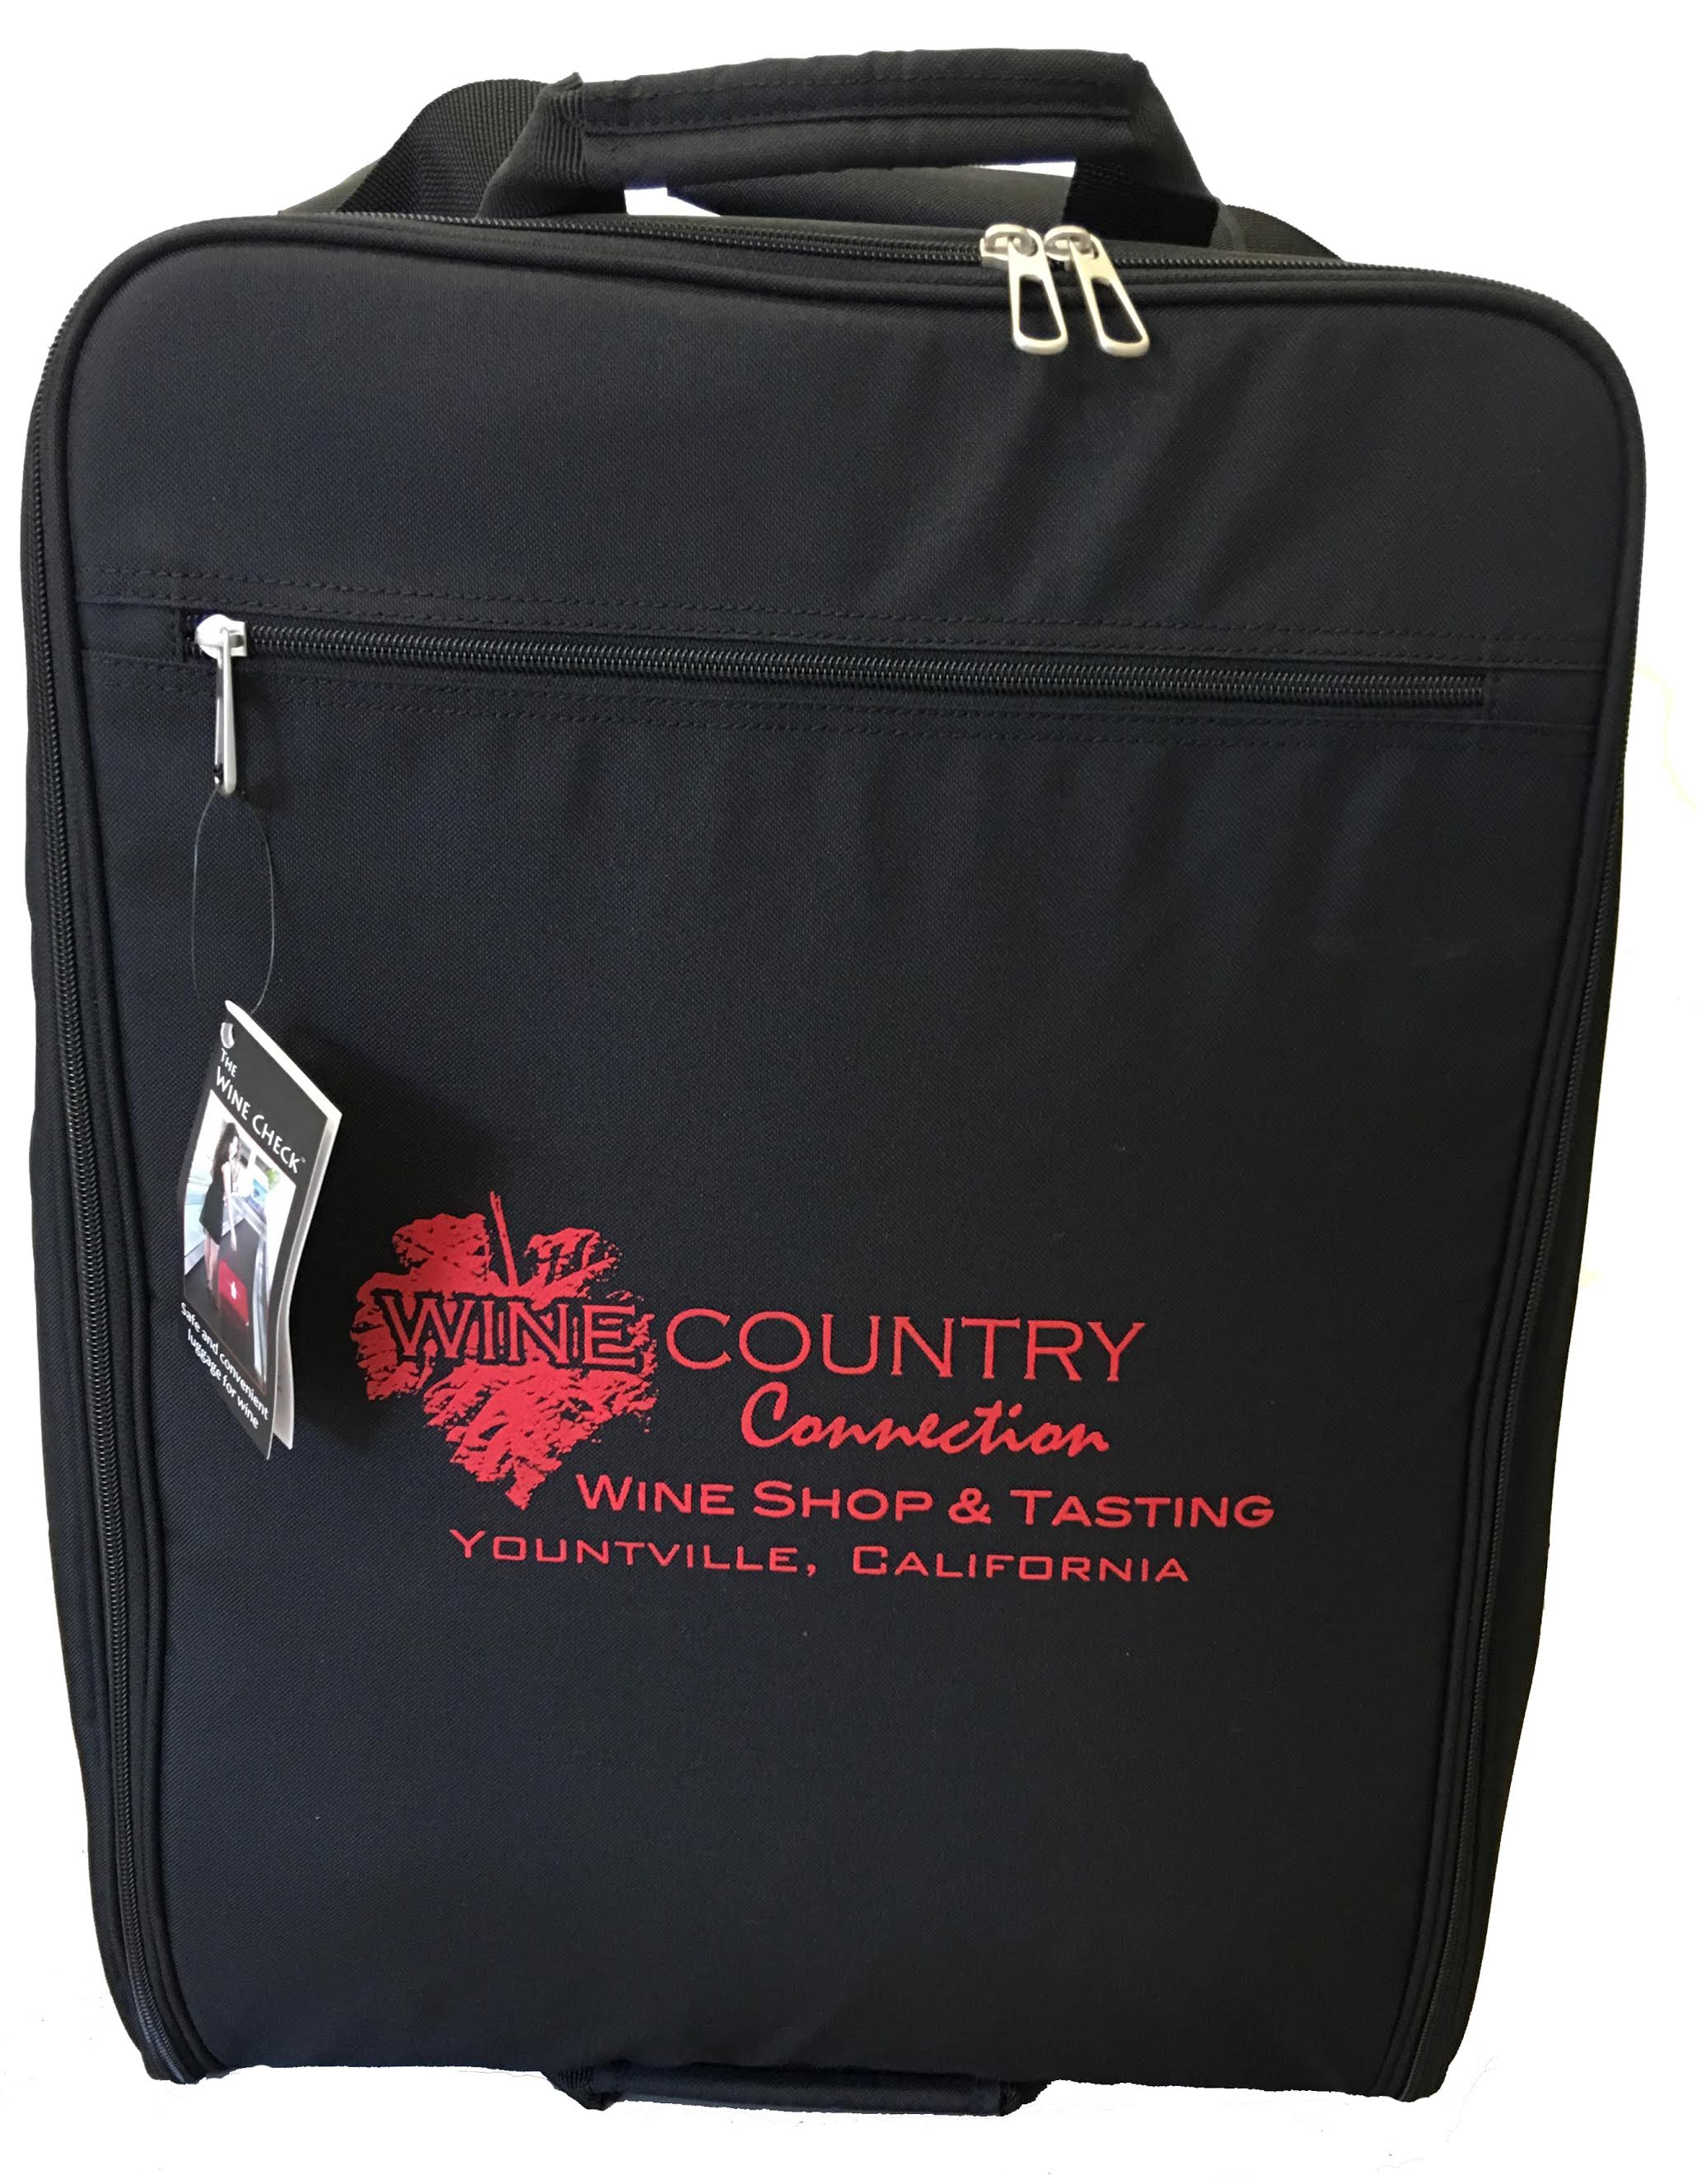 Special Mixed 15 Pack With Wine Check Bag